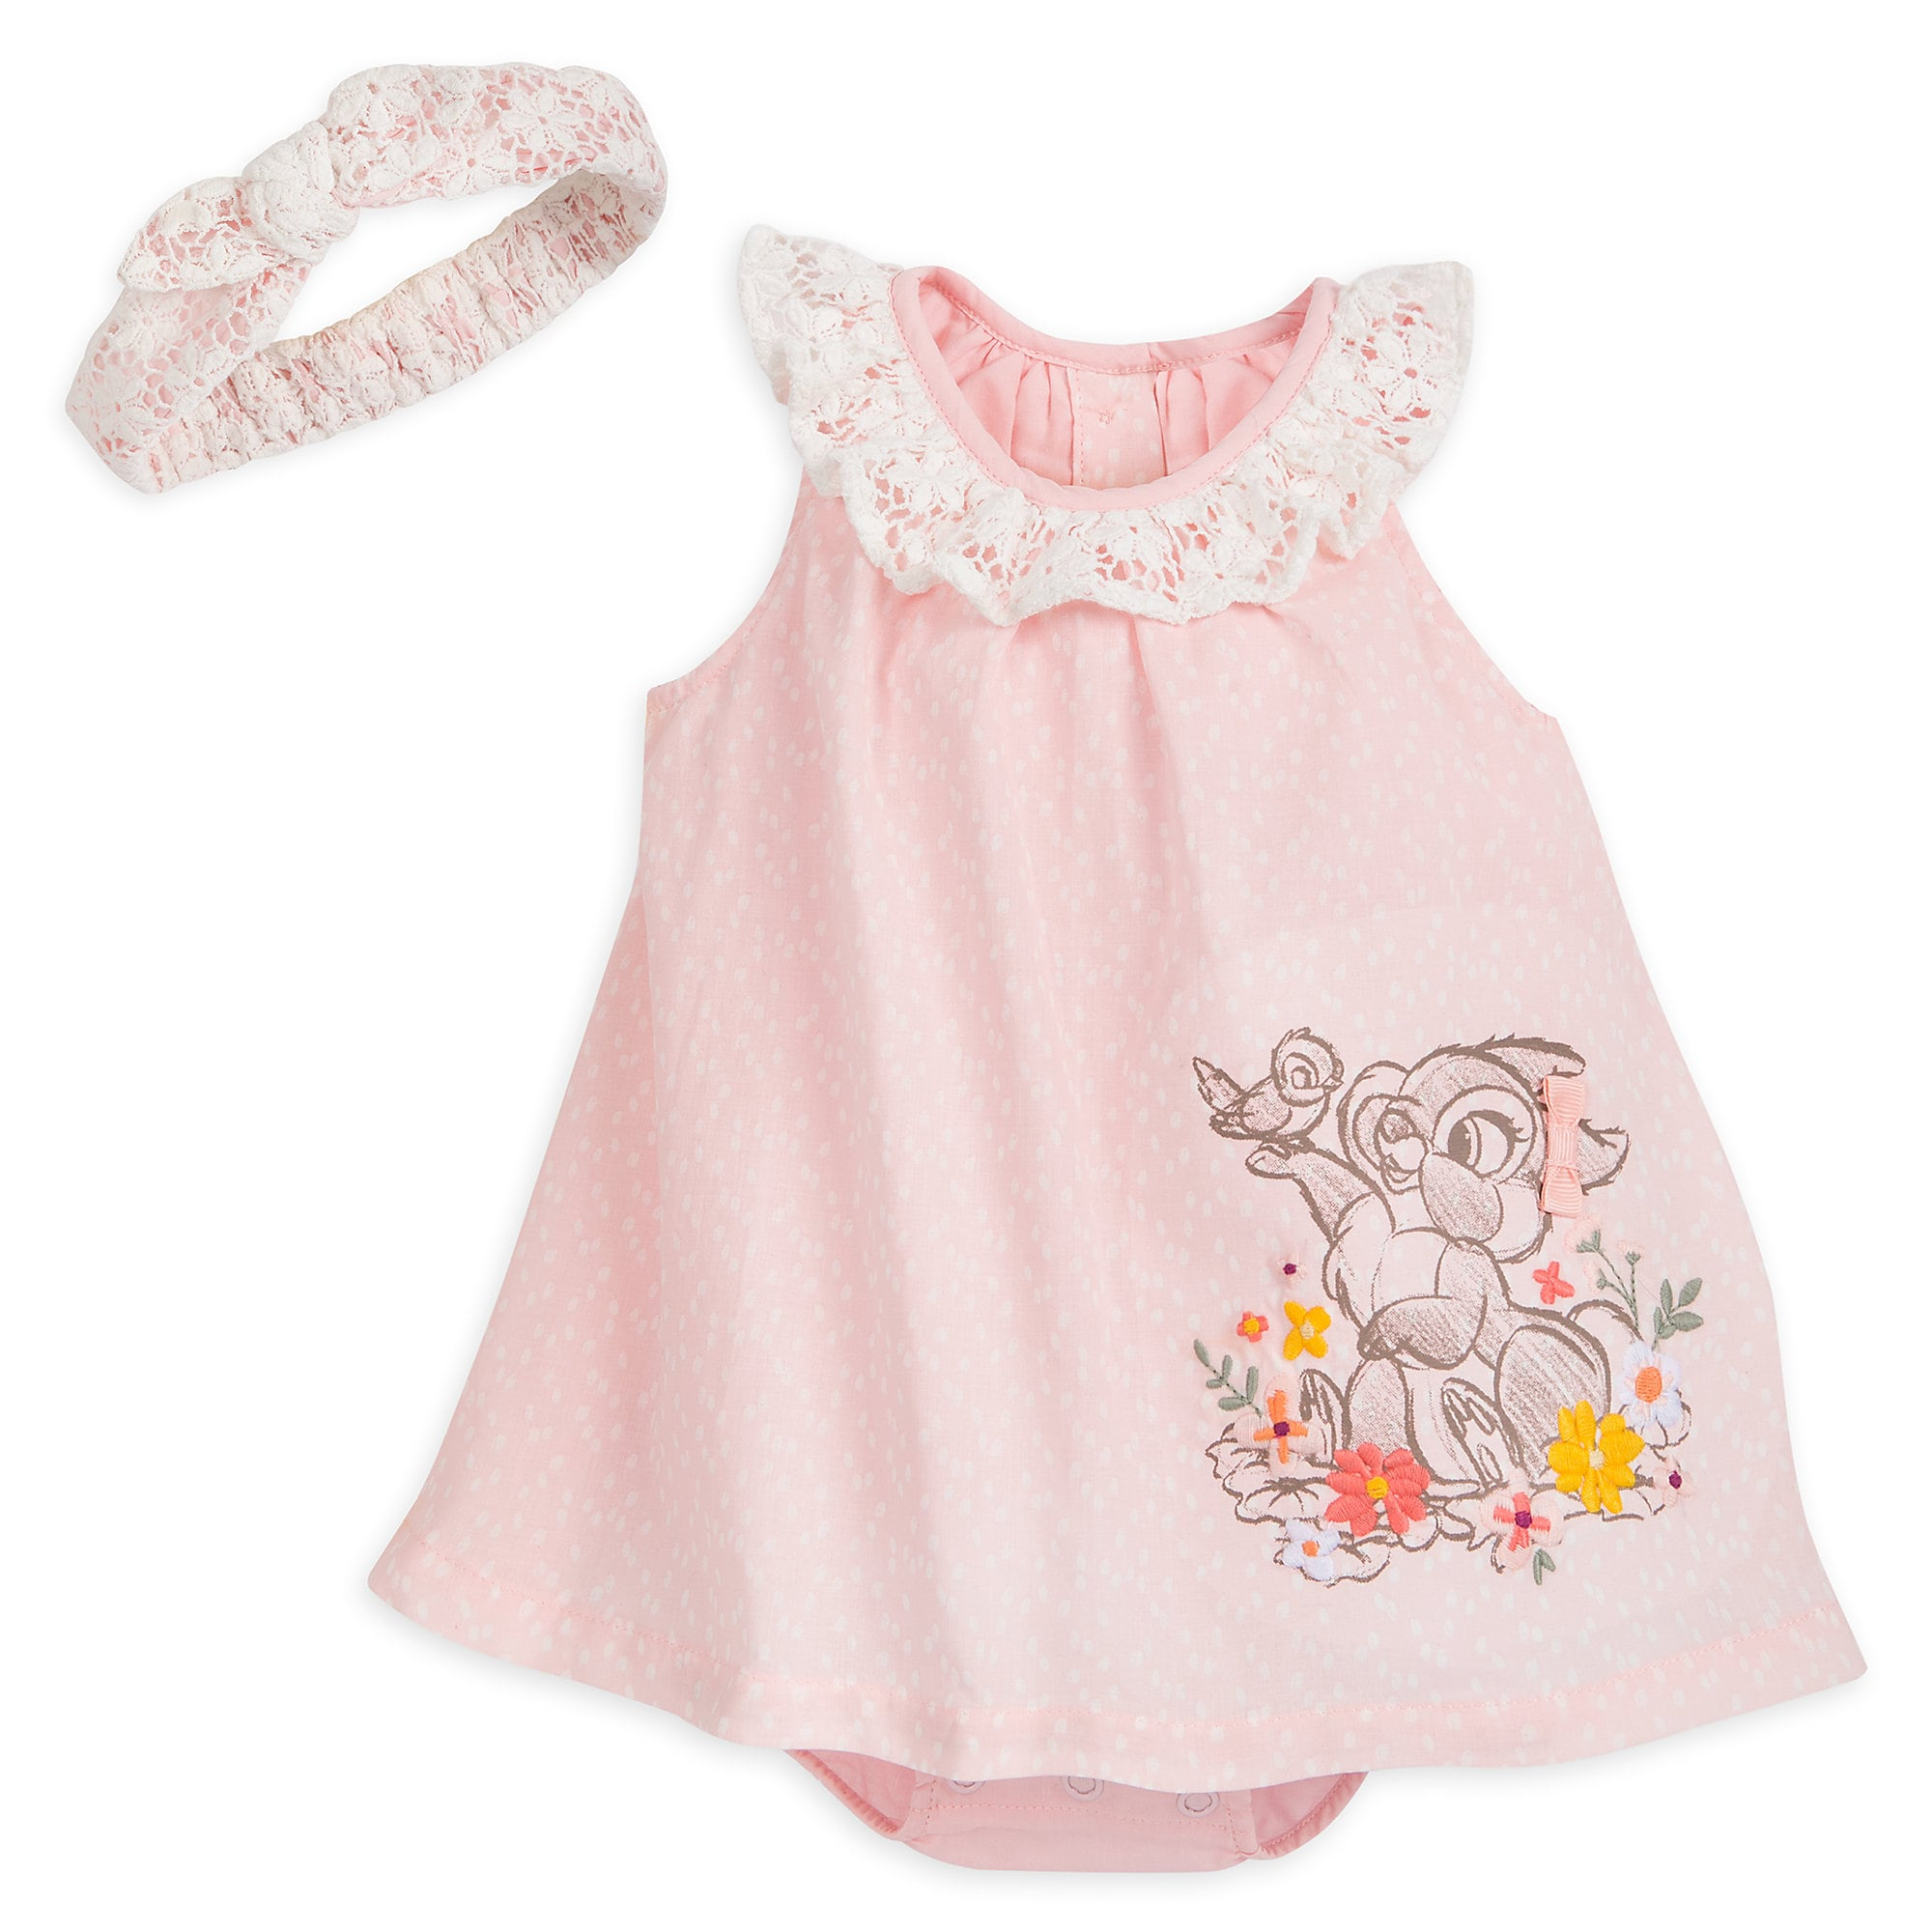 Miss Bunny Romper Dress Set for Baby